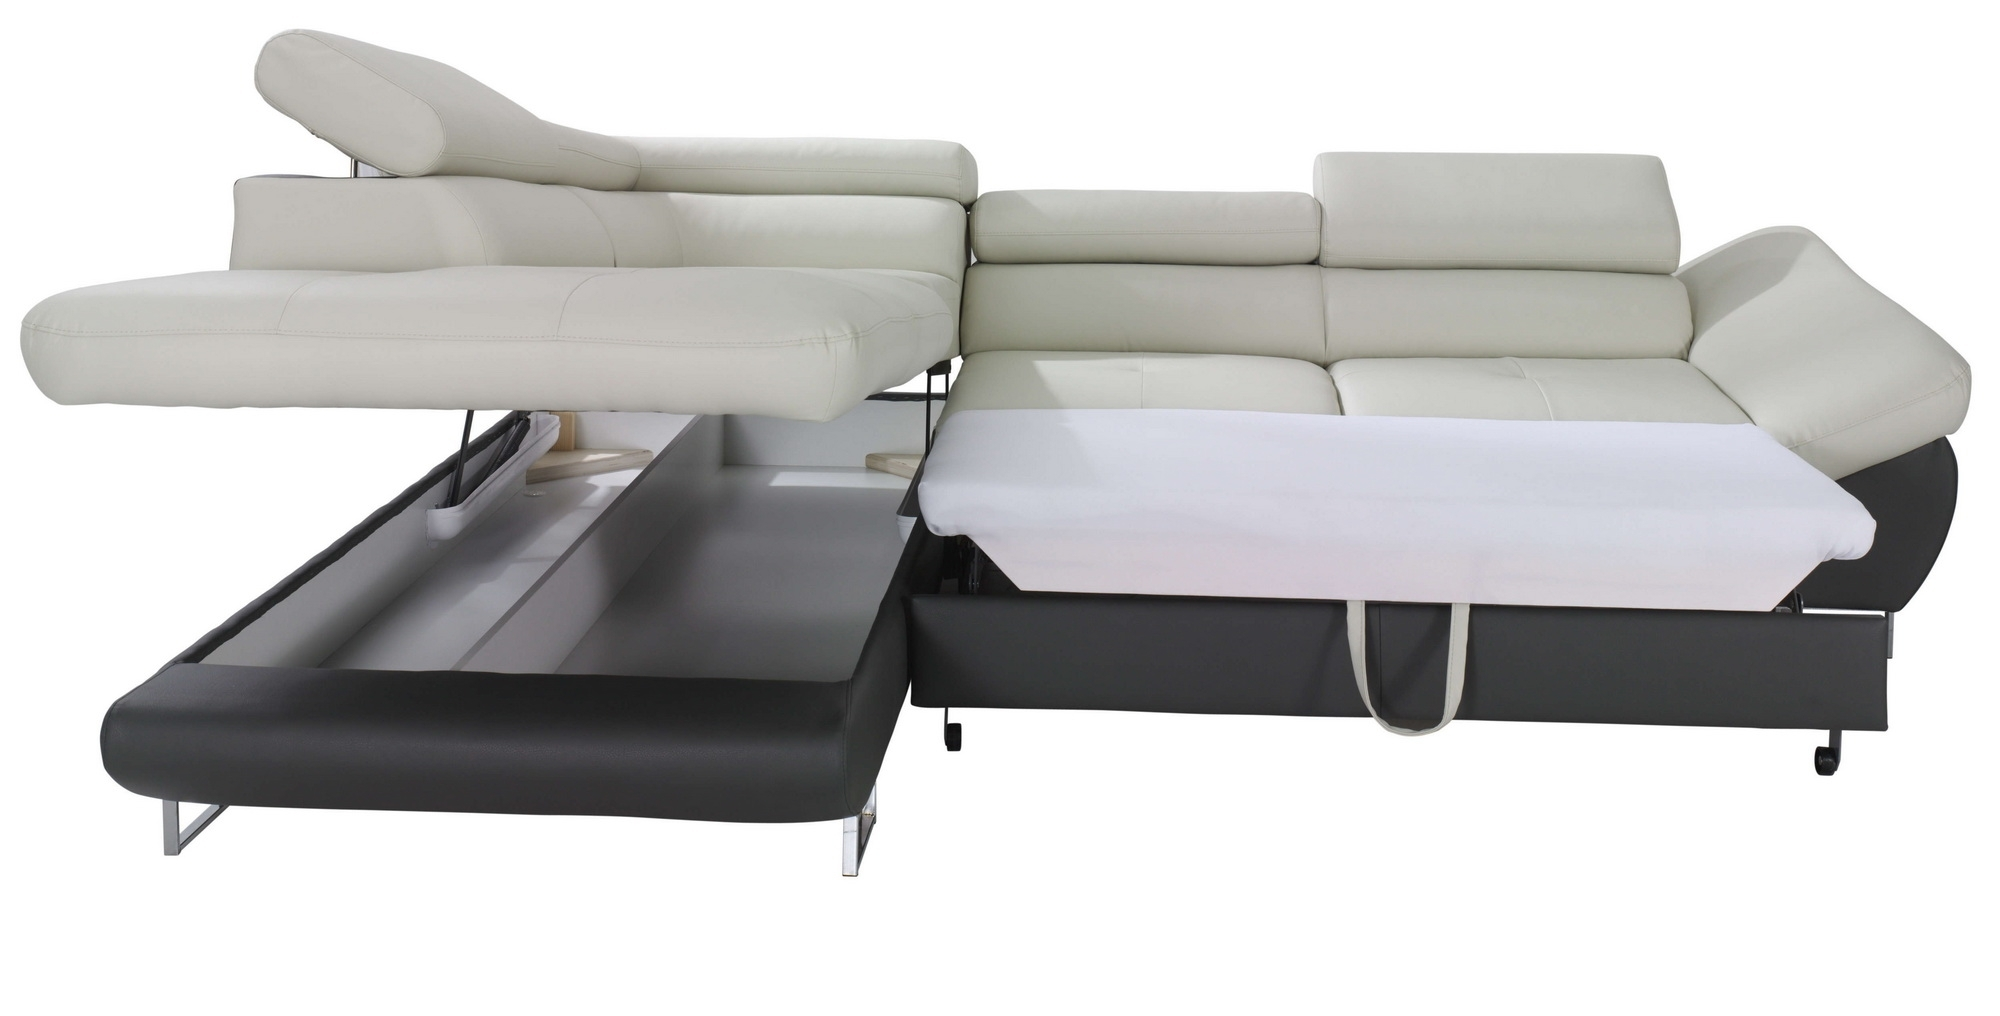 Fabio Sectional Sofa Sleeper With Storage, Creative Furniture with Sectional Sofas With Storage (Image 1 of 10)